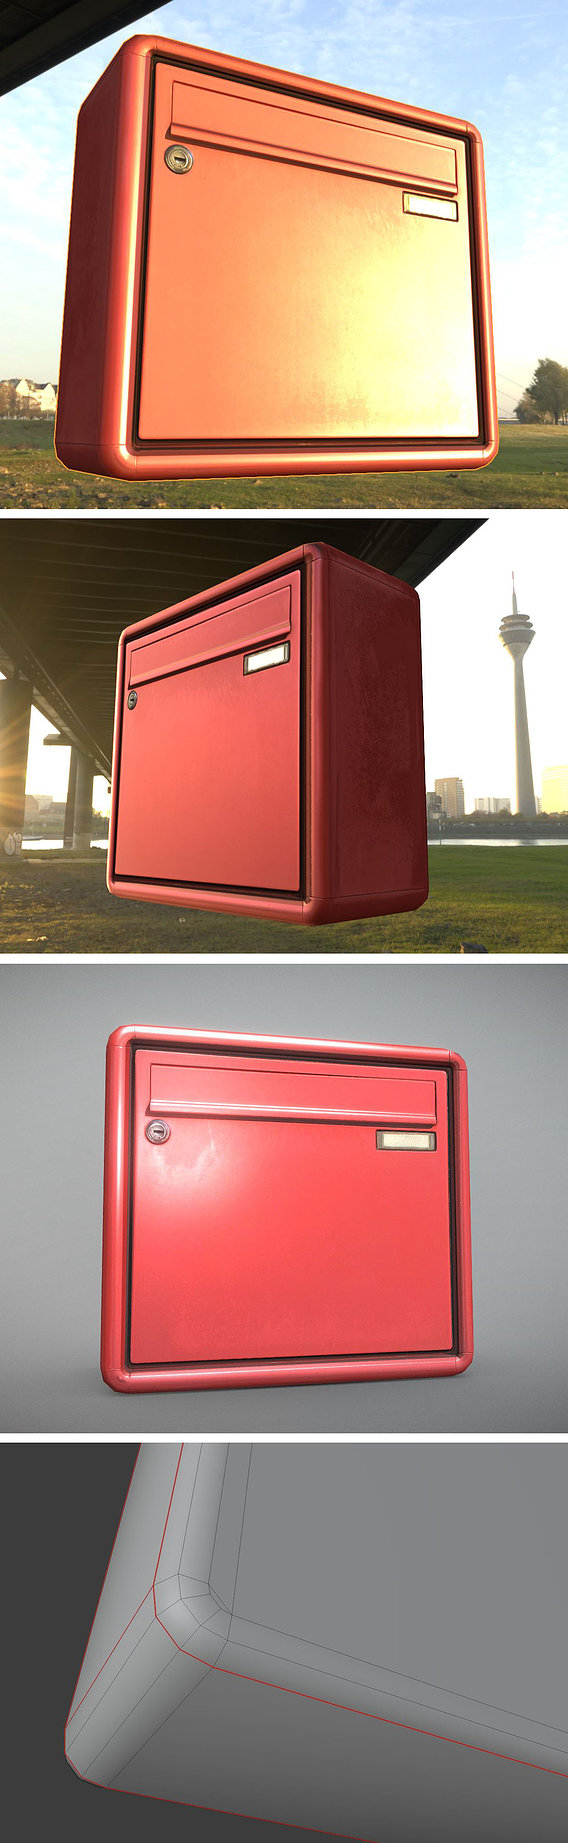 Low-Poly Mailbox 2.0